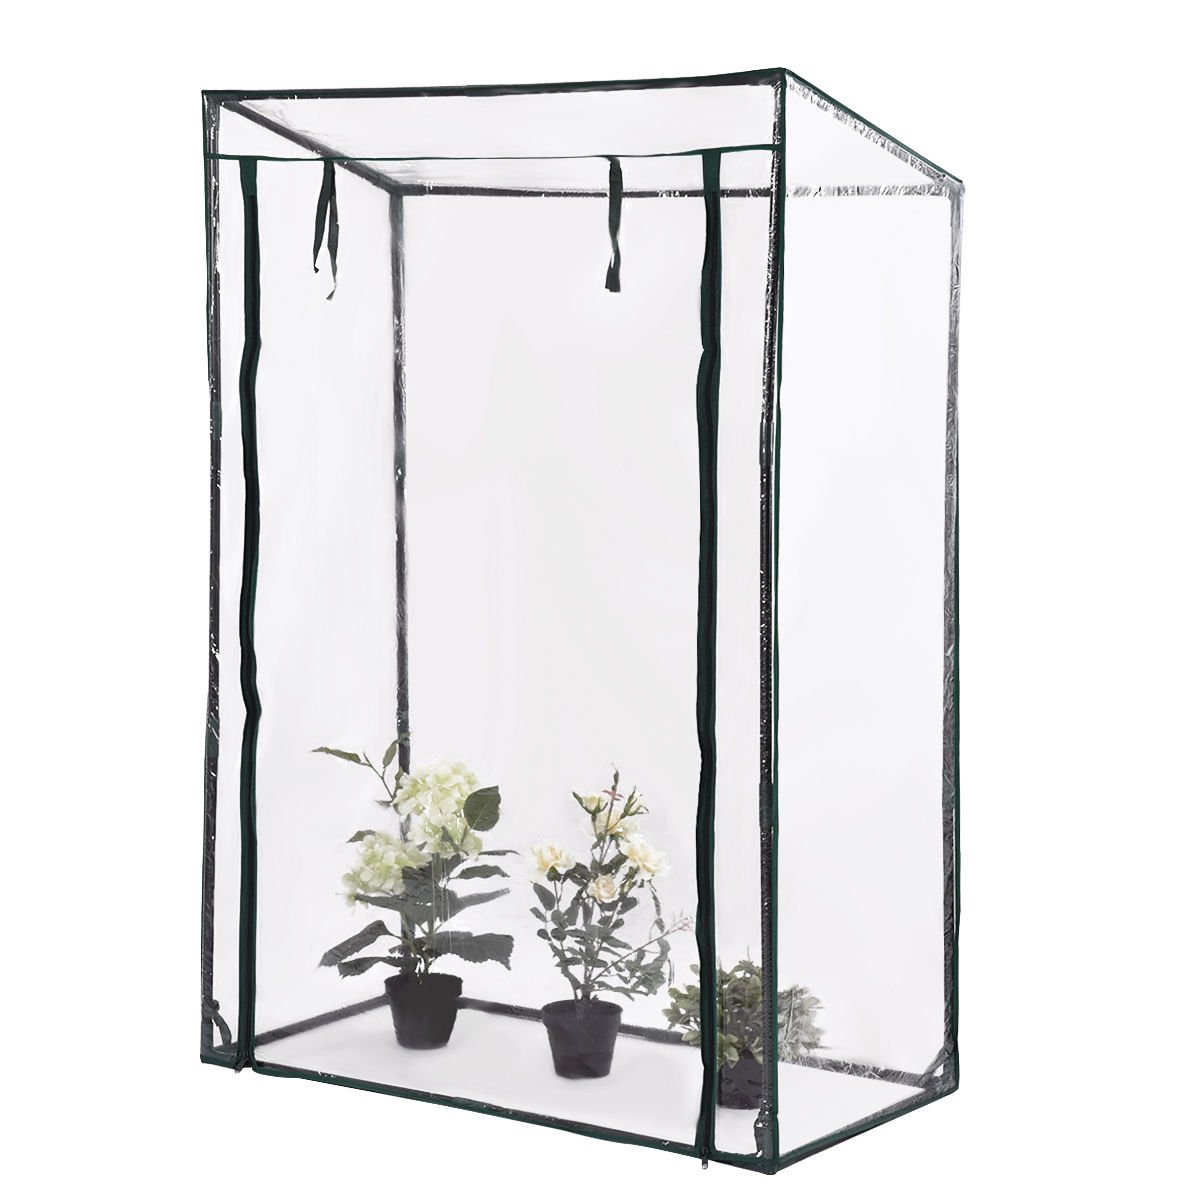 totoshop Garden Greenhouse Grow House Plant Vegetable Growbag W/PVC Cover 40''x20''x59''